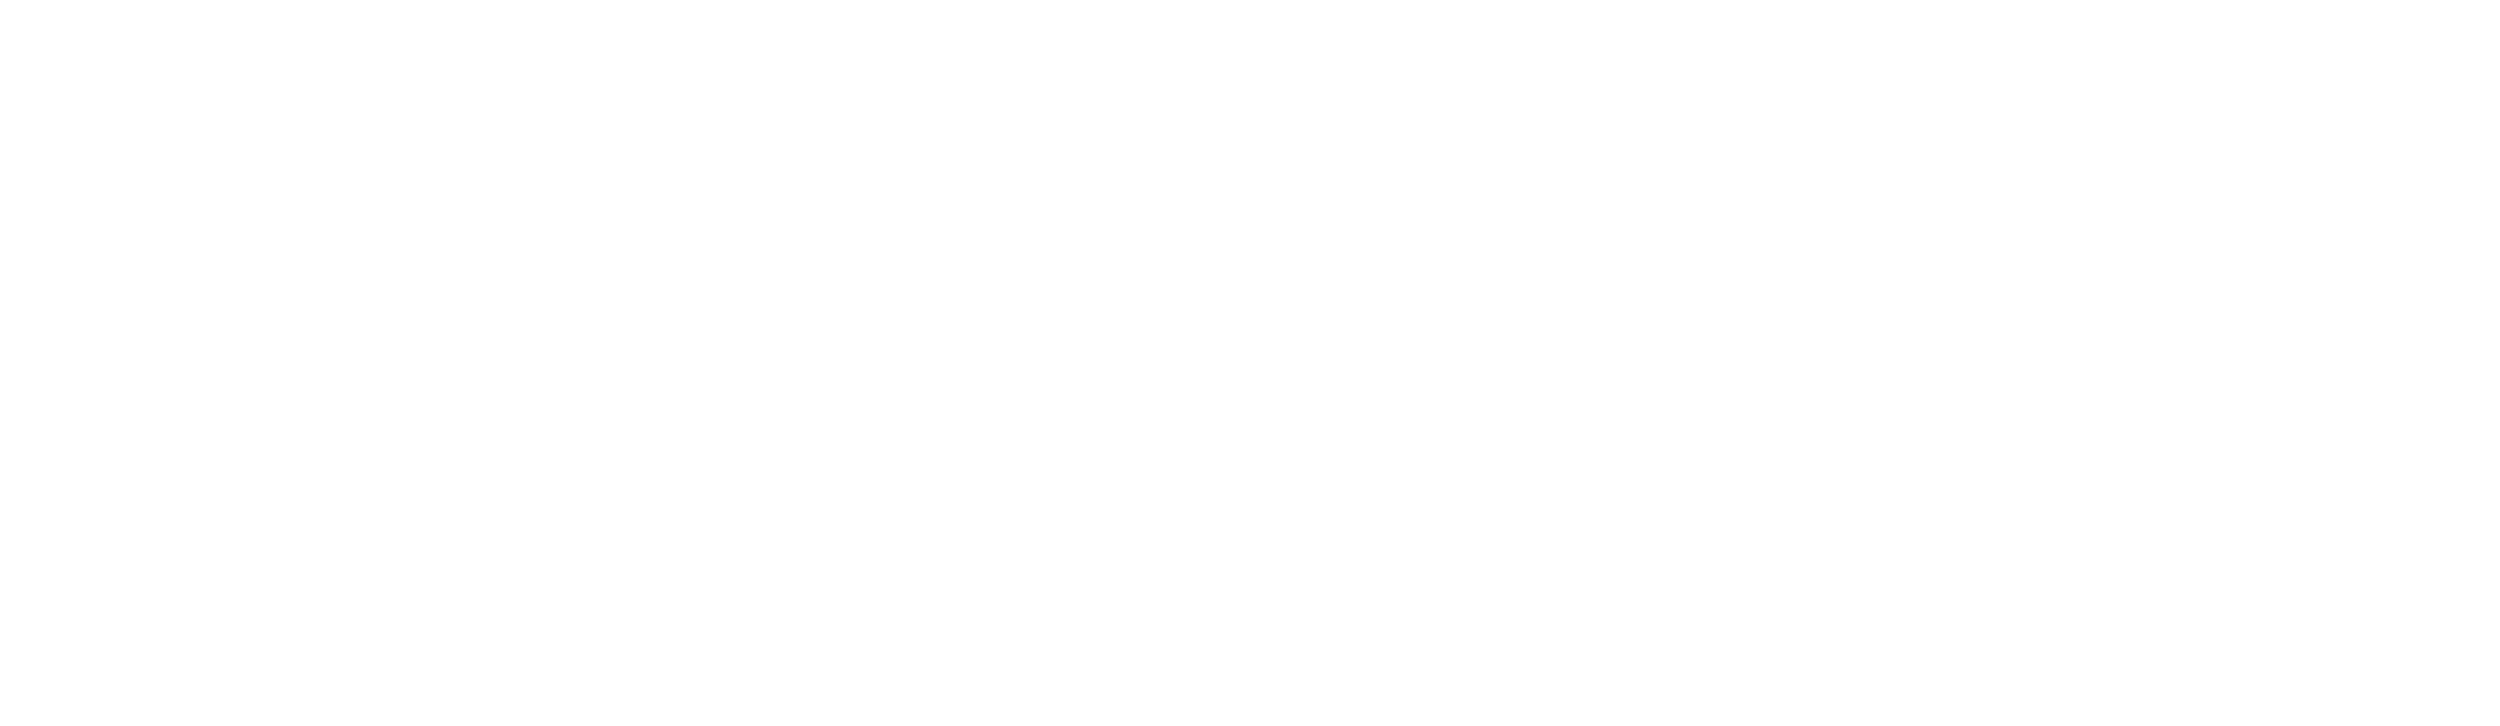 OFFICIALSELECTION-VIFF.png